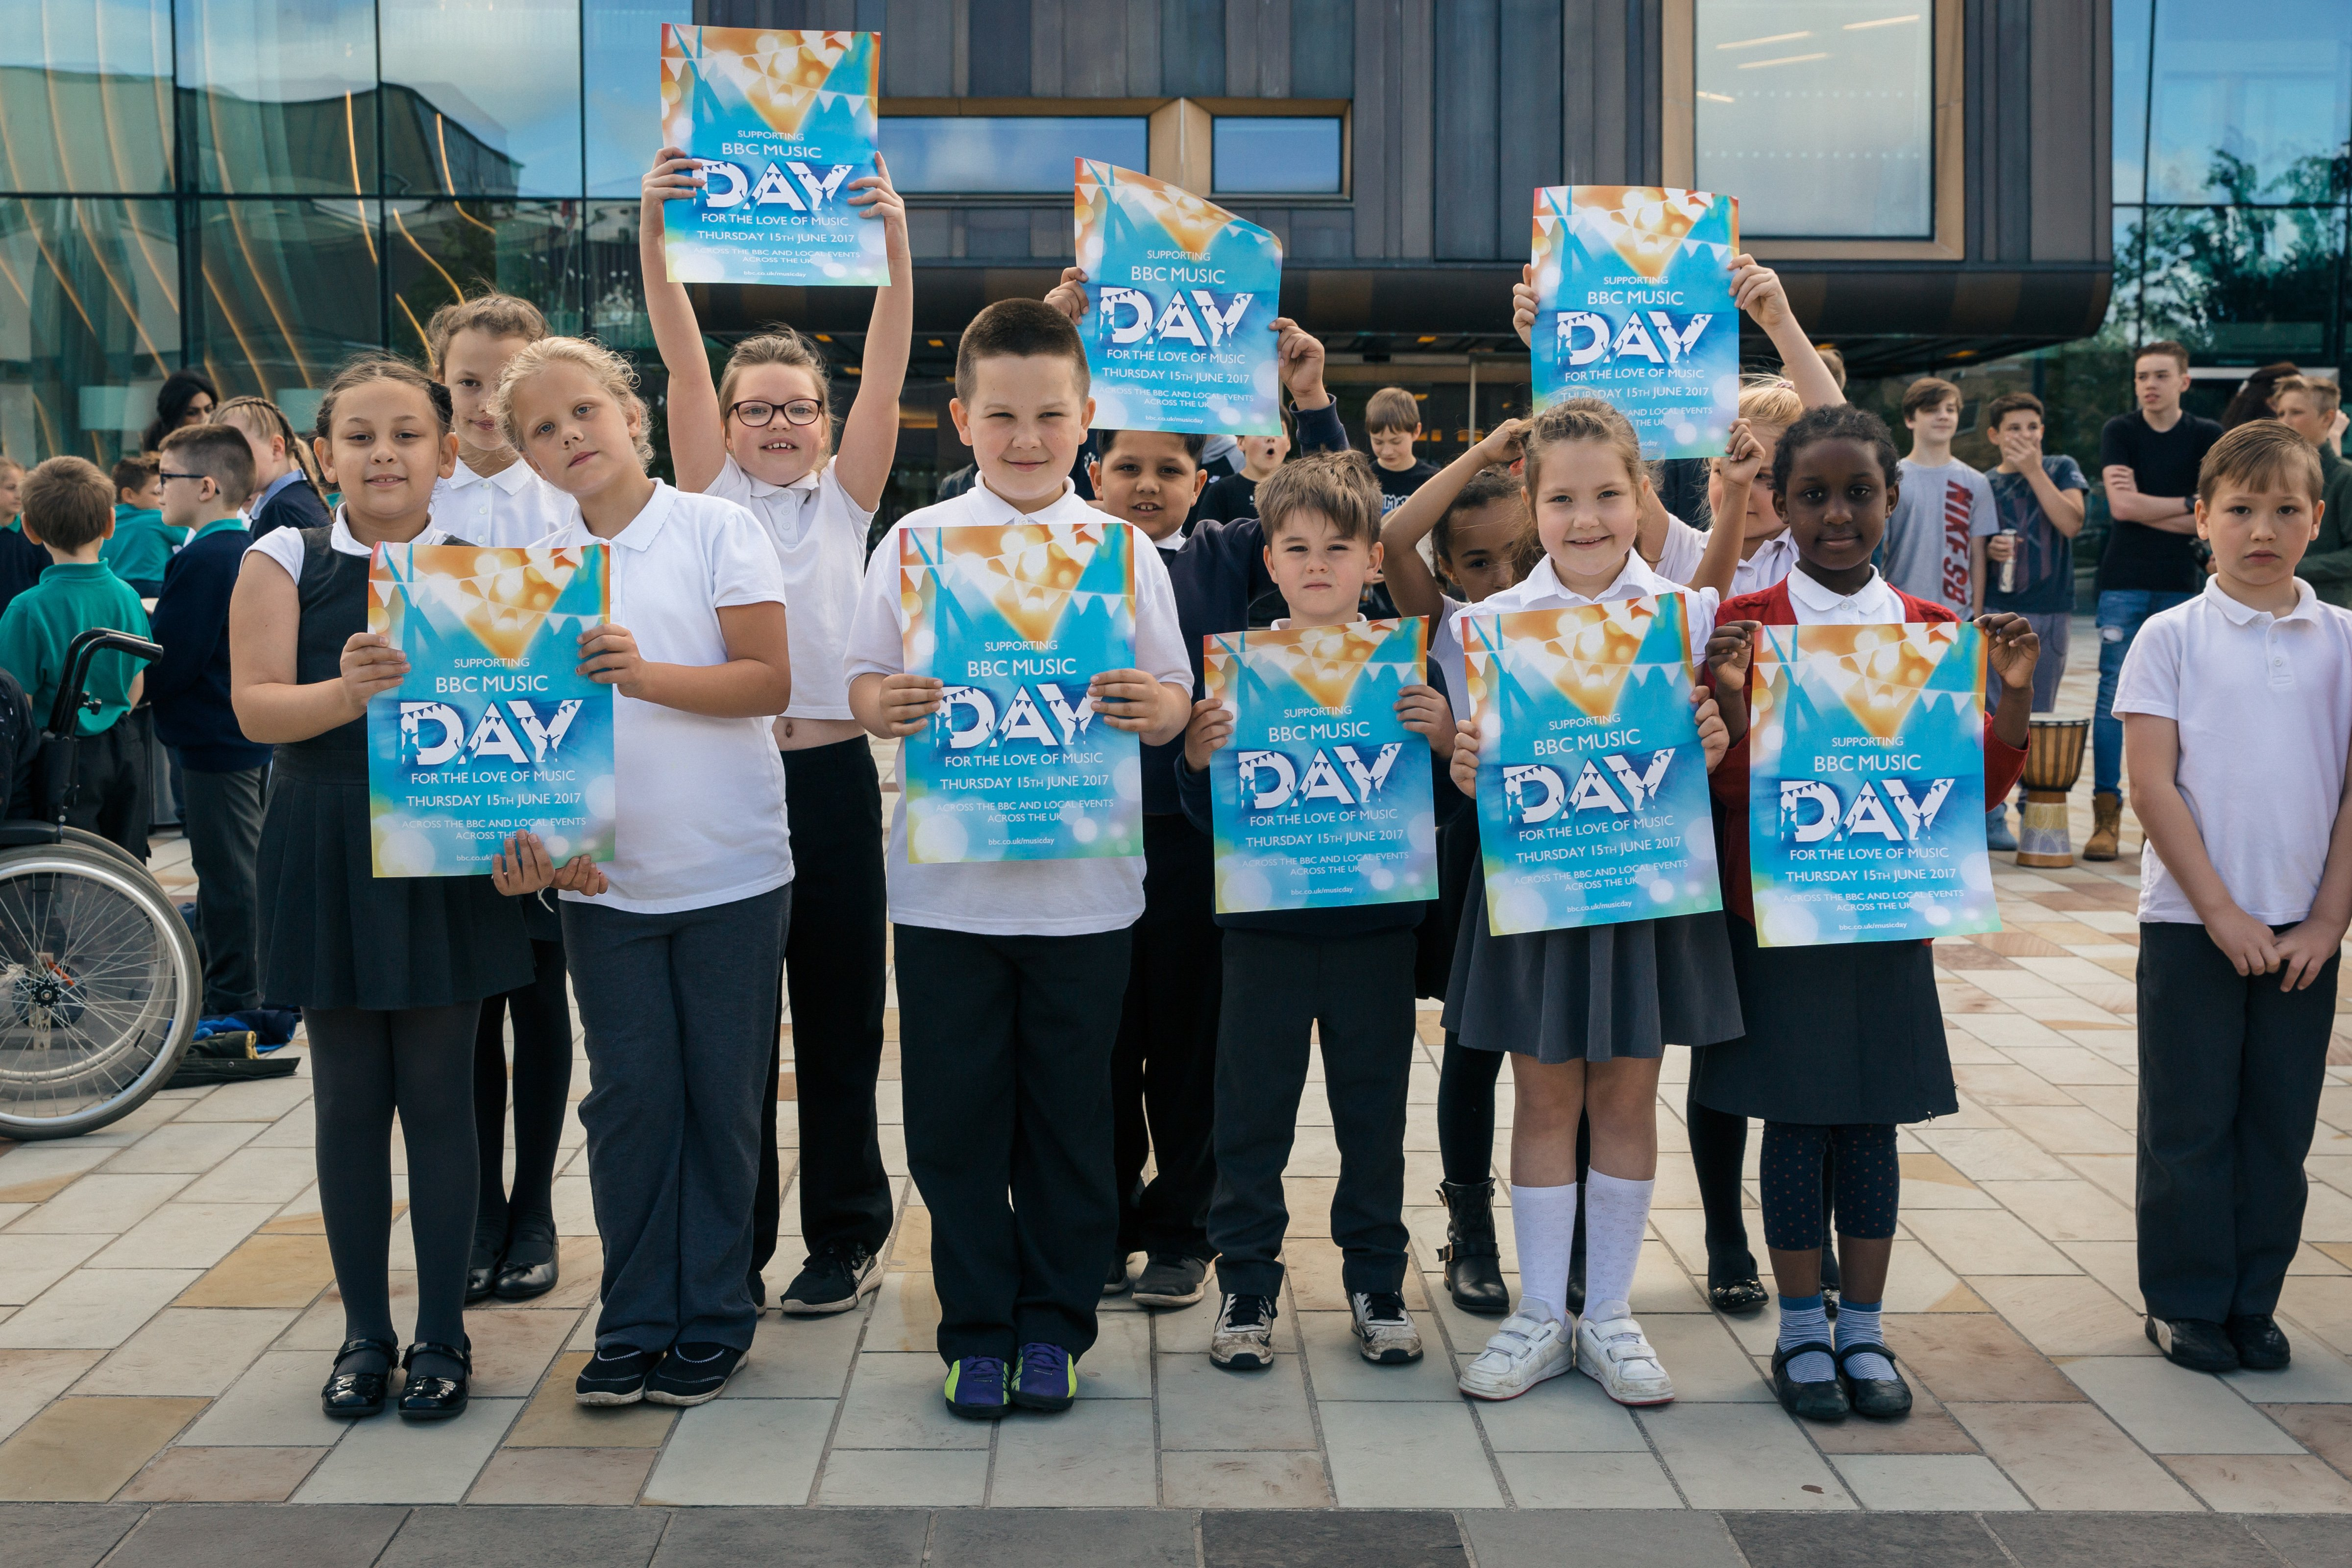 Over 1500 Doncaster pupils celebrate BBC Music Day